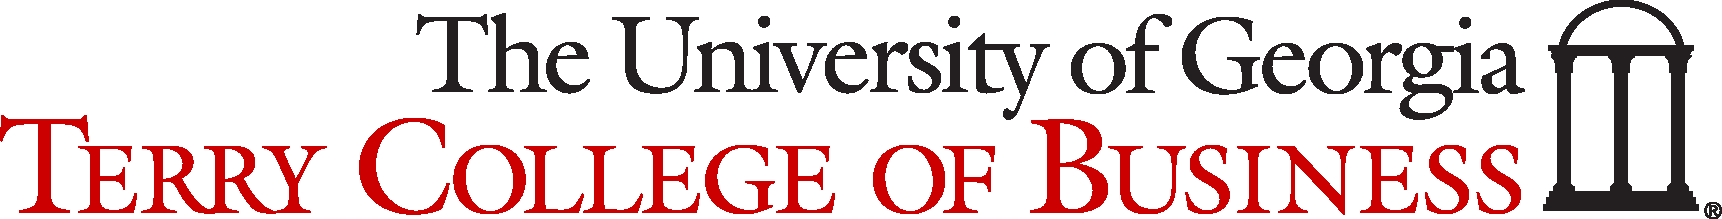 University of Georgia Terry College of Business logo